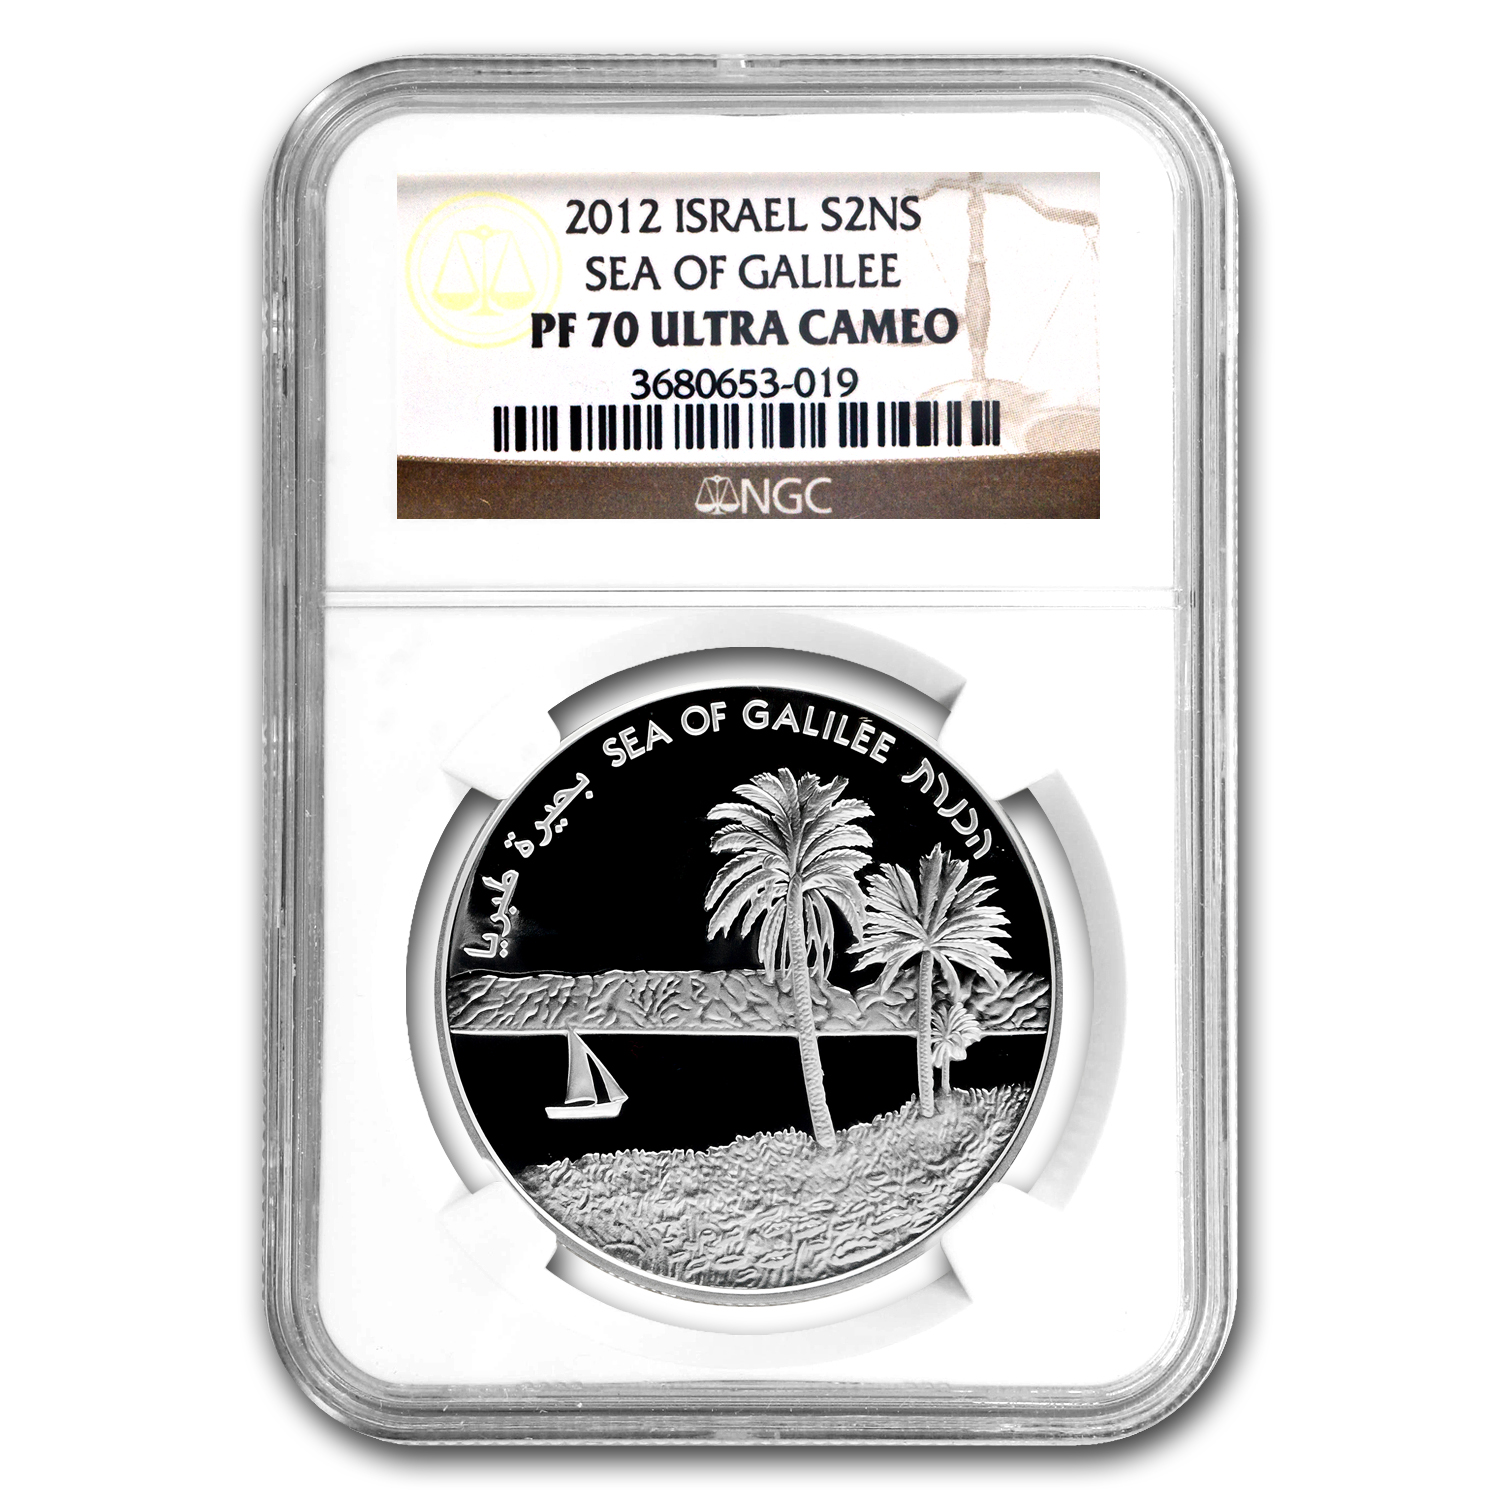 2012 Israel Sea of Galilee Silver 2 NIS PR-70 NGC